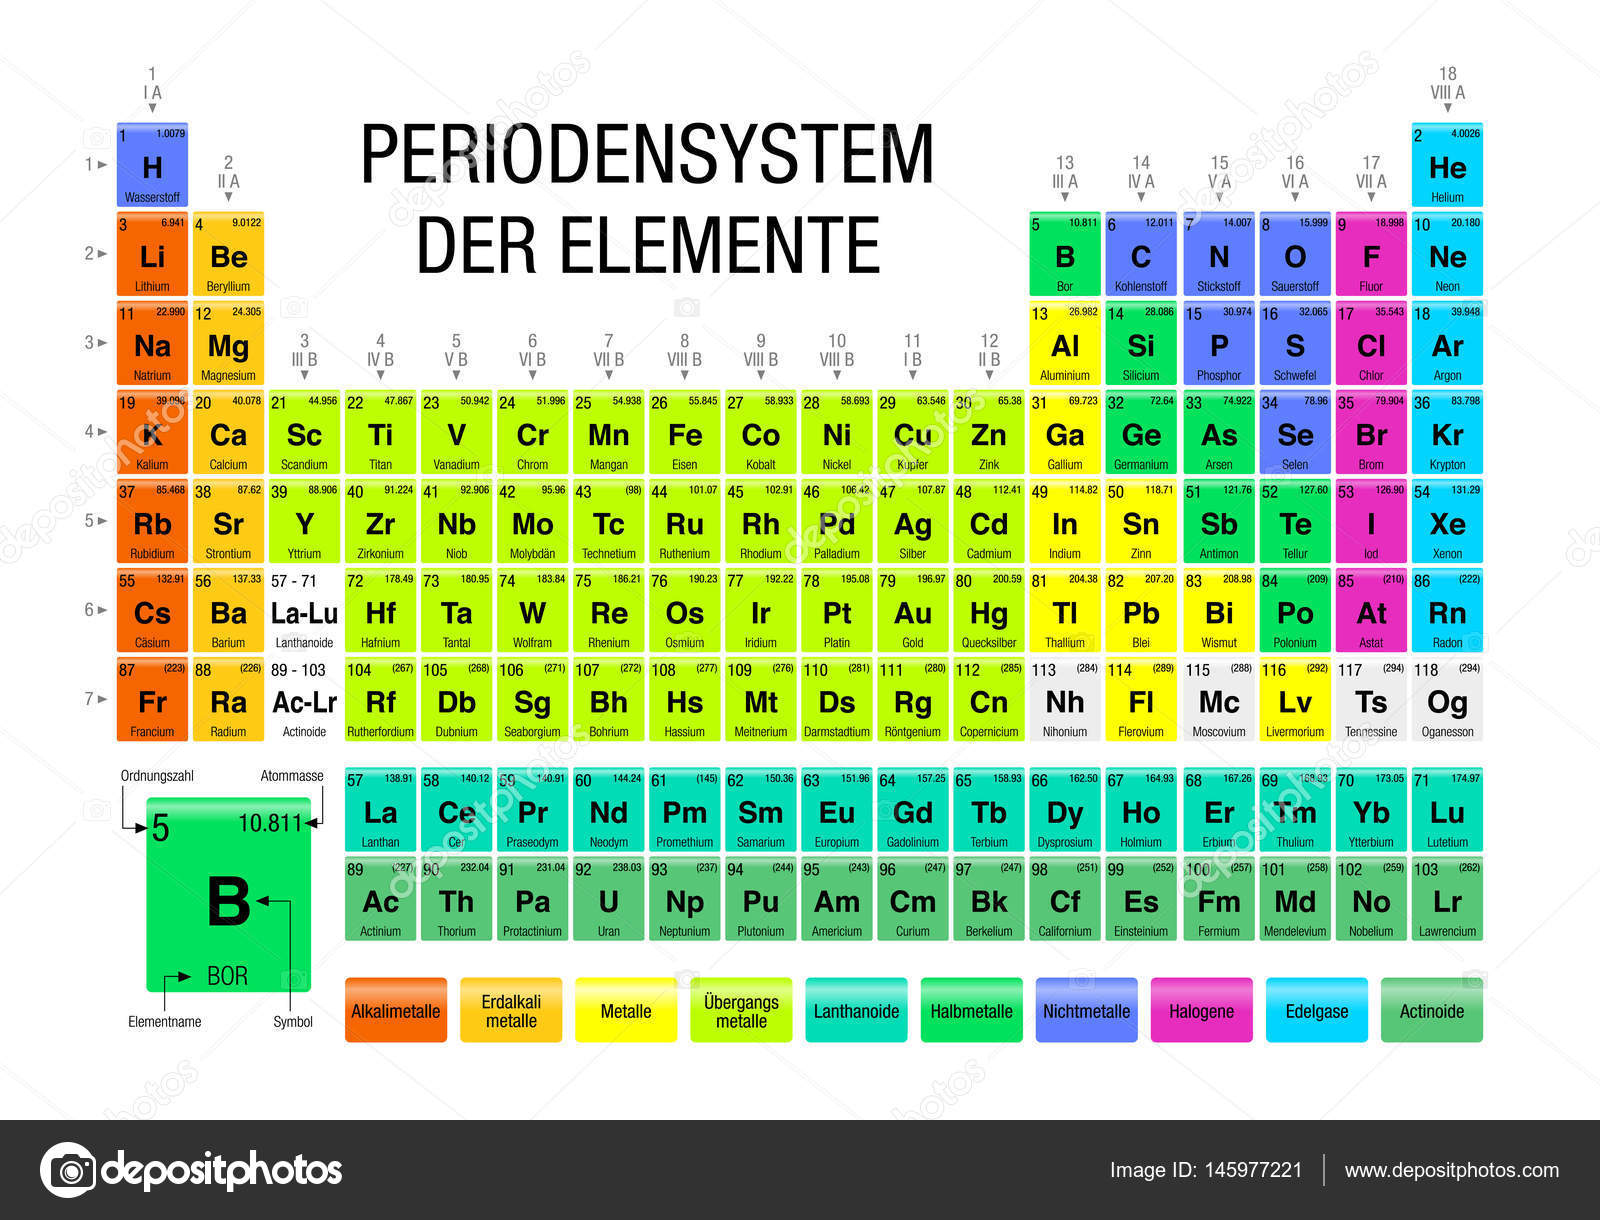 Periodensystem der elemente periodic table of elements in german periodensystem der elemente periodic table of elements in german language on white background with urtaz Choice Image